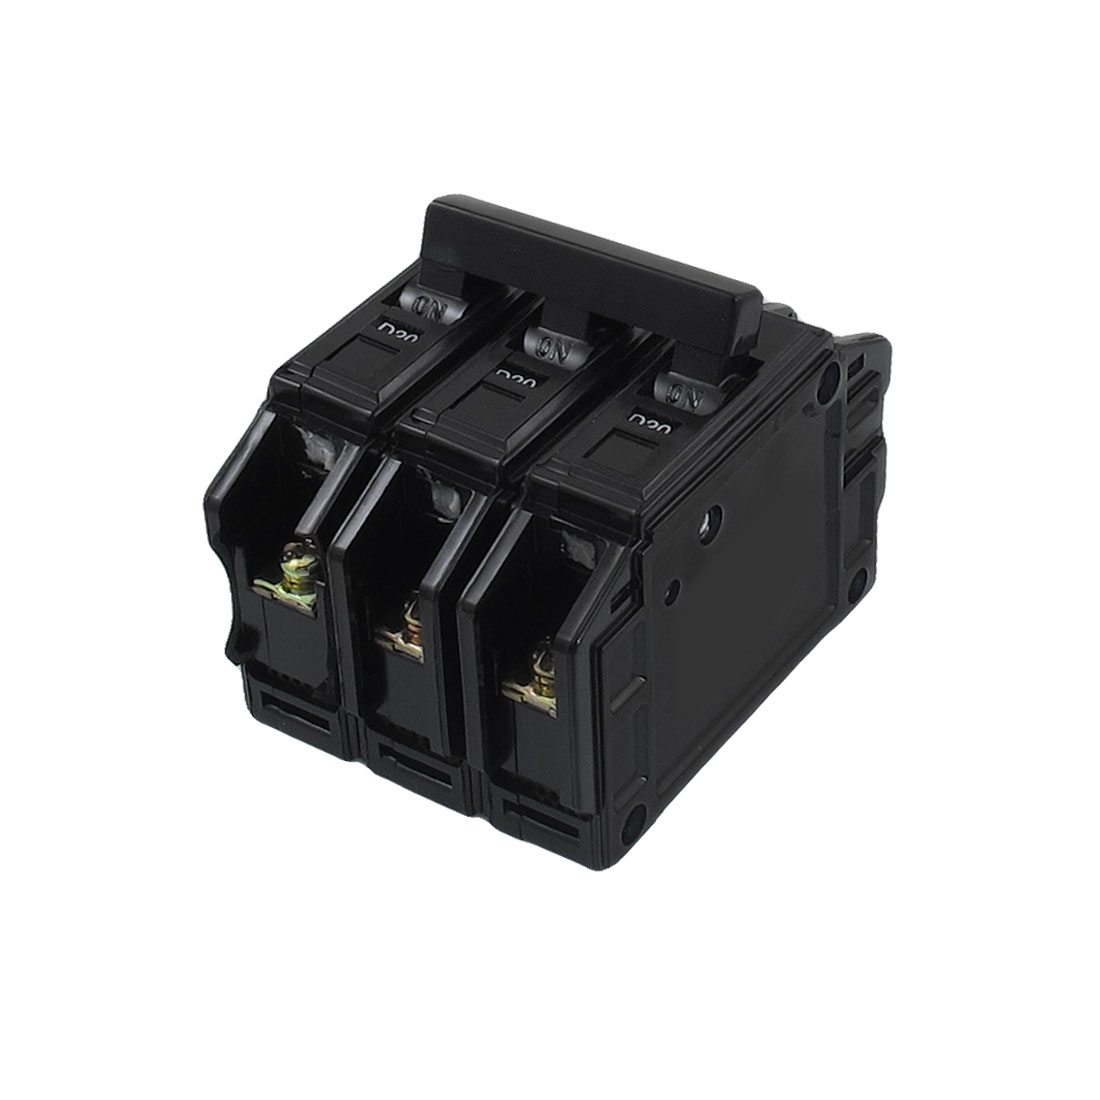 AC 220V/380V 20A Three Poles 3P MCCB Moulded Case Circuit Breaker